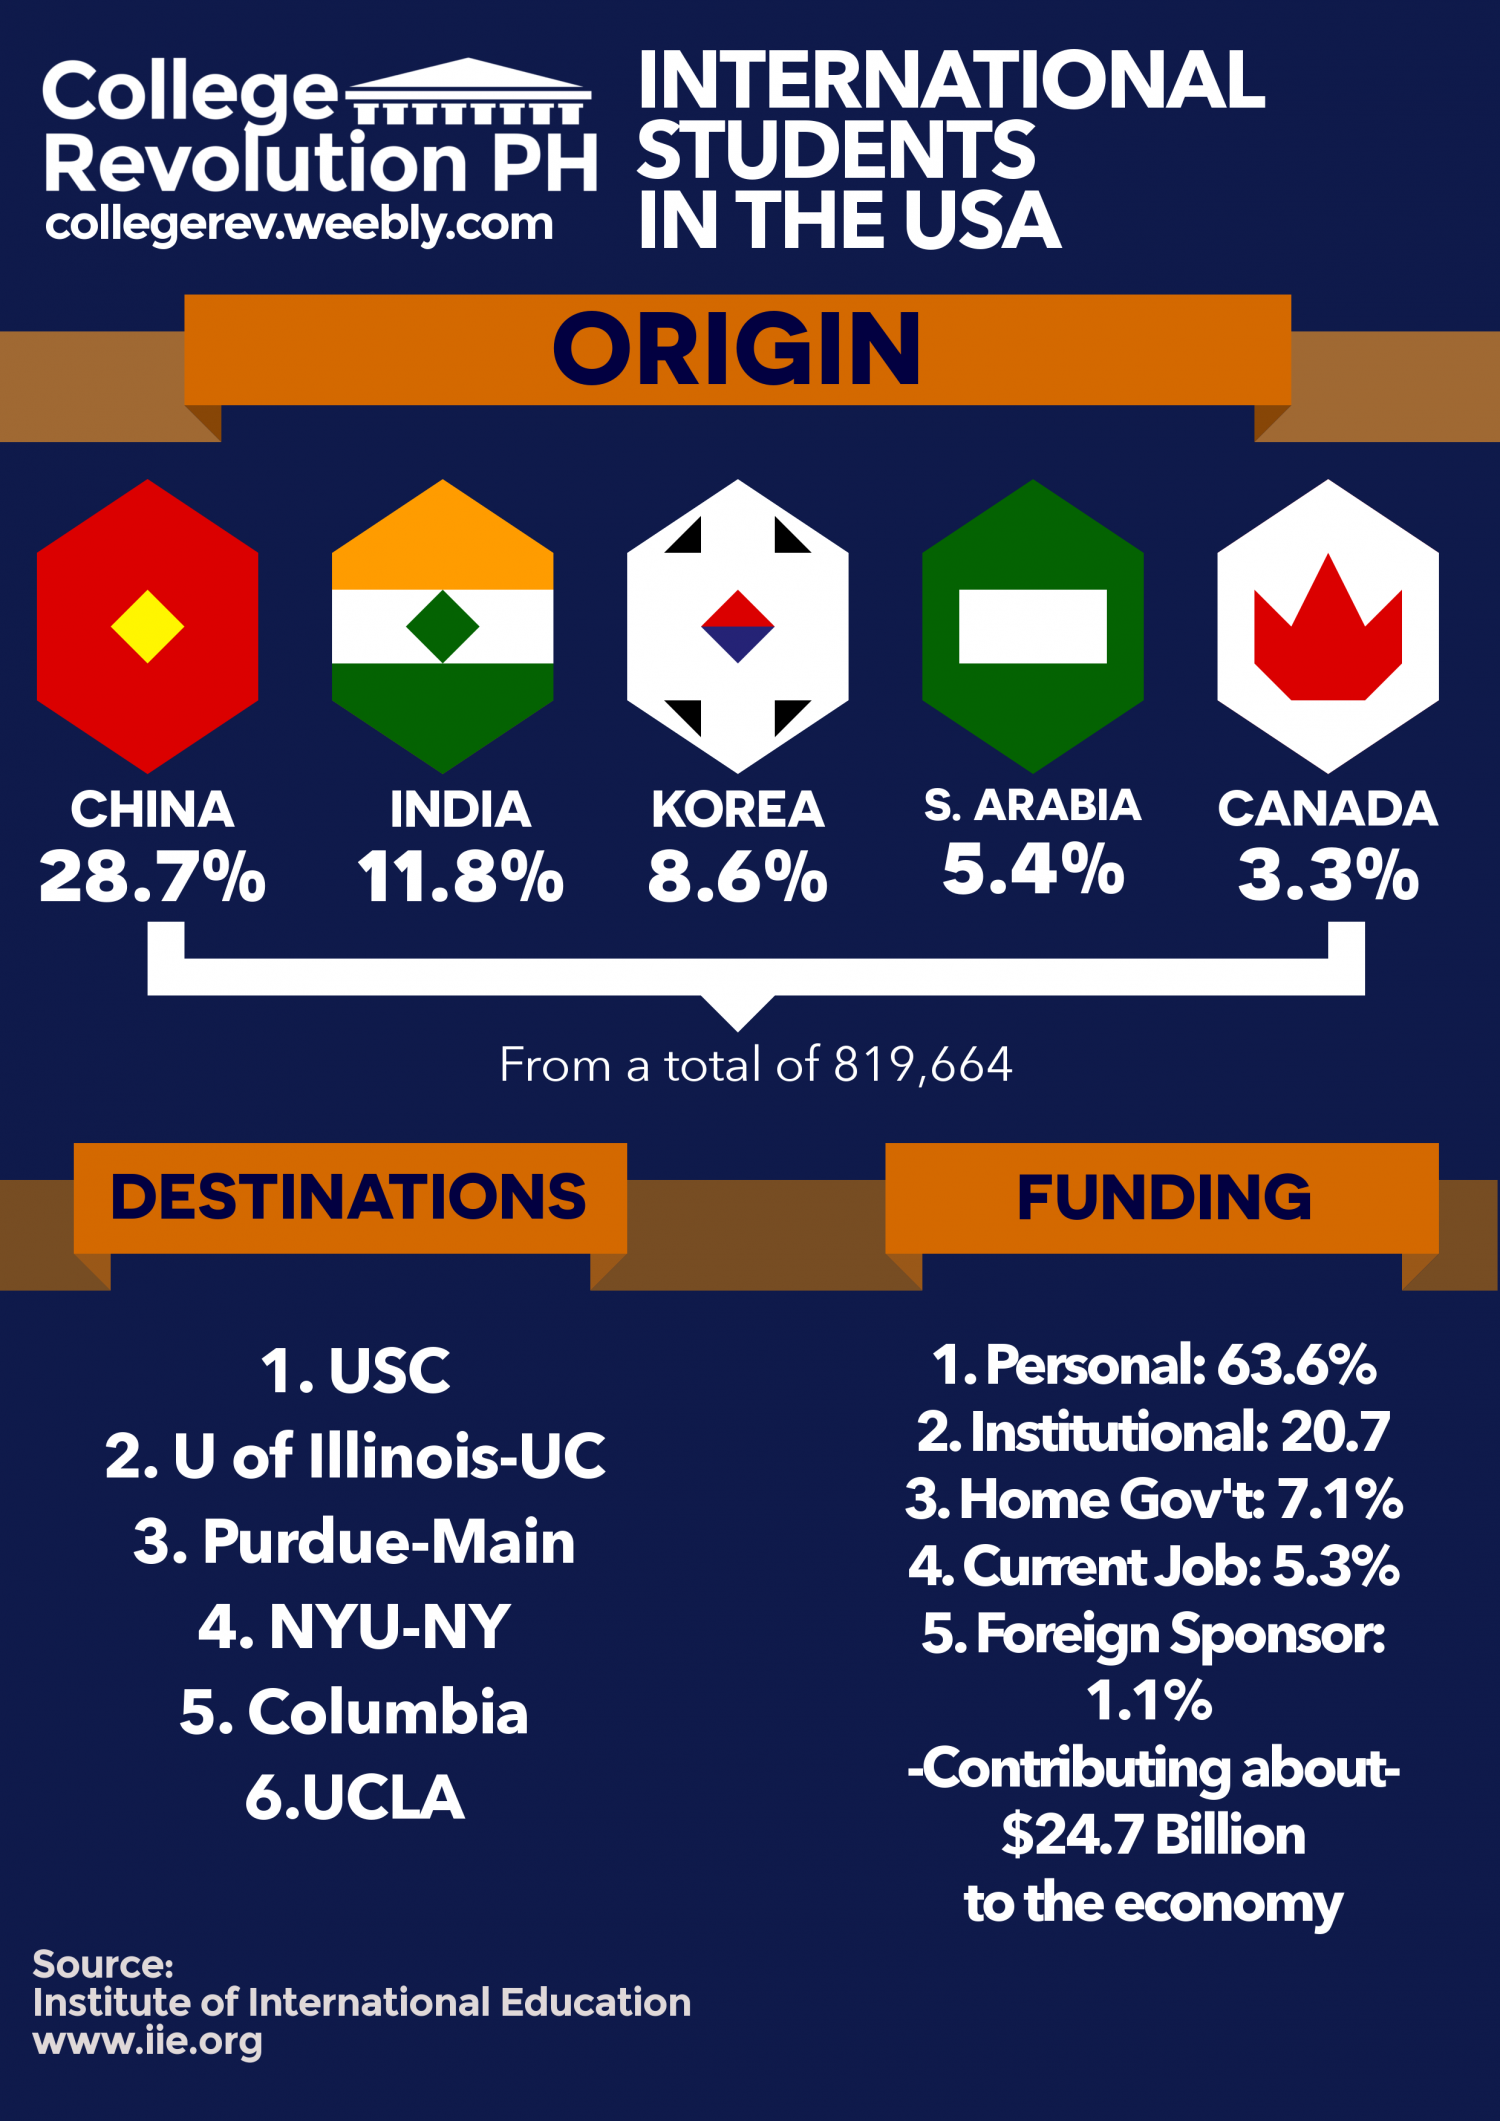 International Students in the USA Infographic